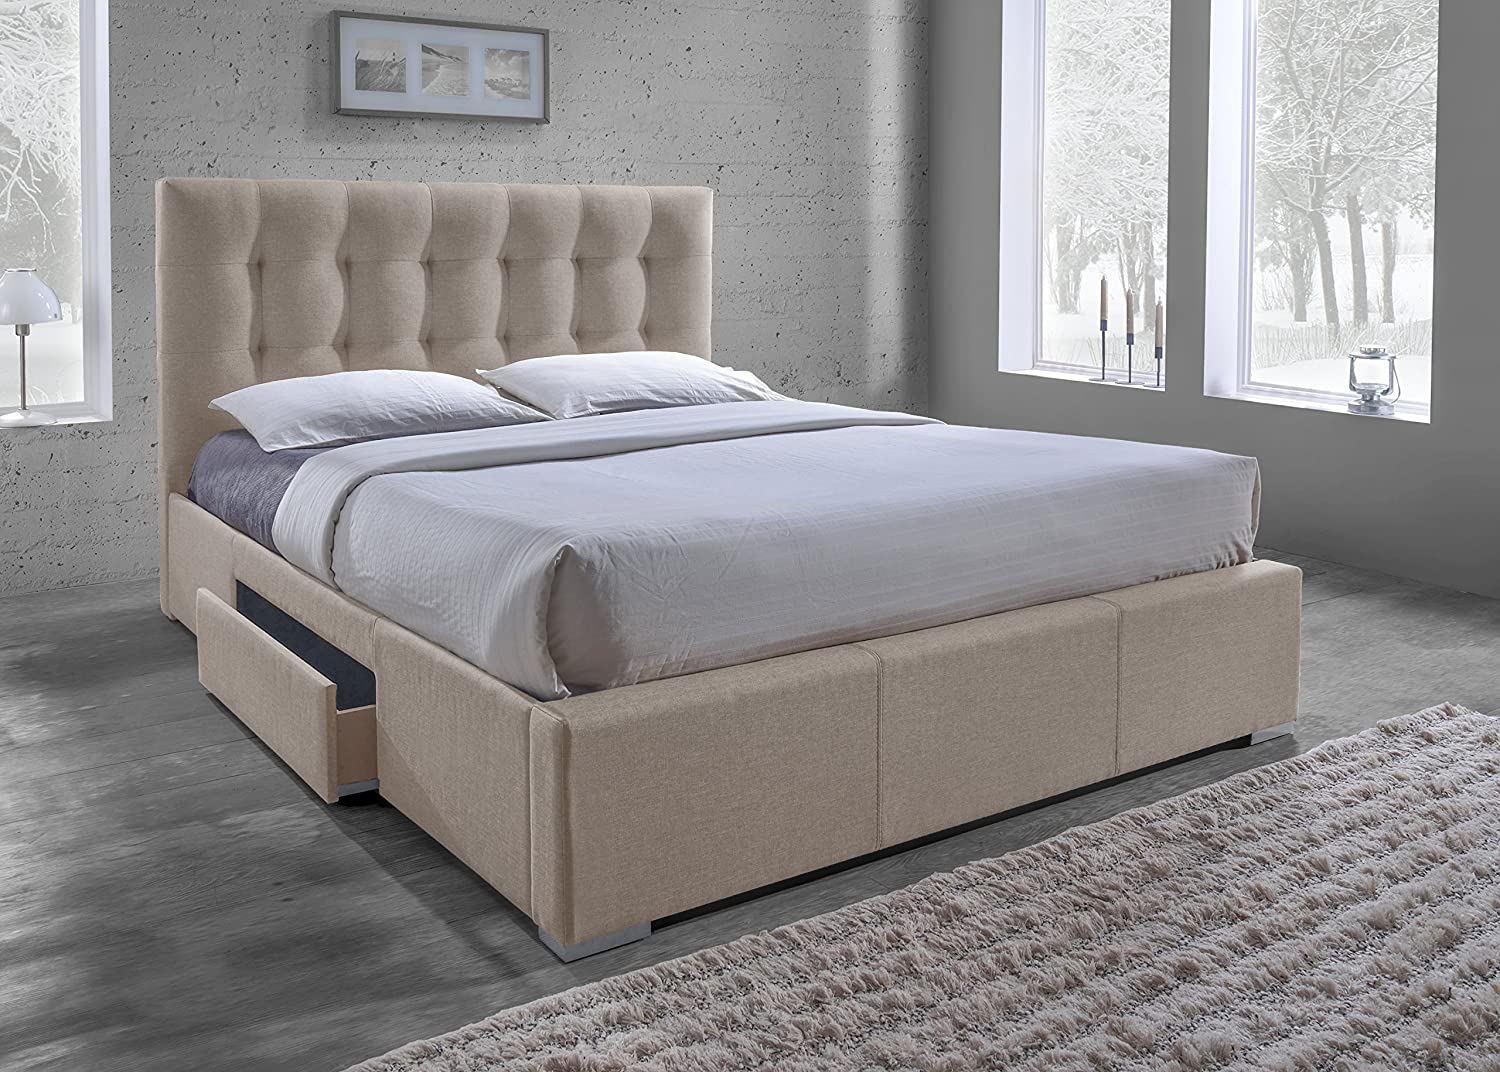 with diy likable platform fram in storage joseph beds bjuuug dk frameheadboard outstanding wells size comforter gallery drawers bed sunshiny then louis sets and smashing drawer captains frame as bedroom fashionable king